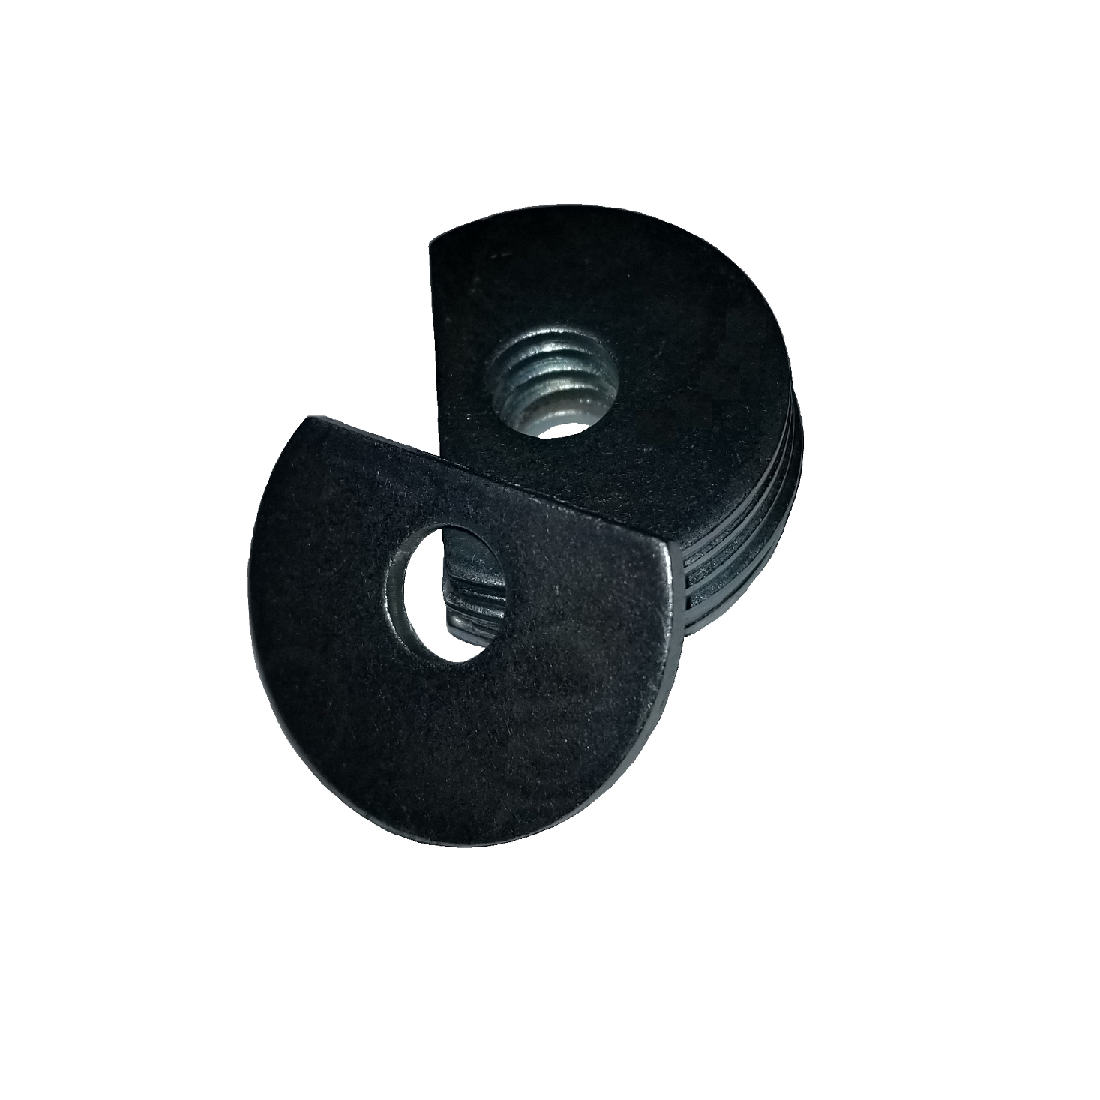 Clipped OD Washer - 0.171 ID, 0.375 OD, 0.030 Thick, Stainless - 300 Series